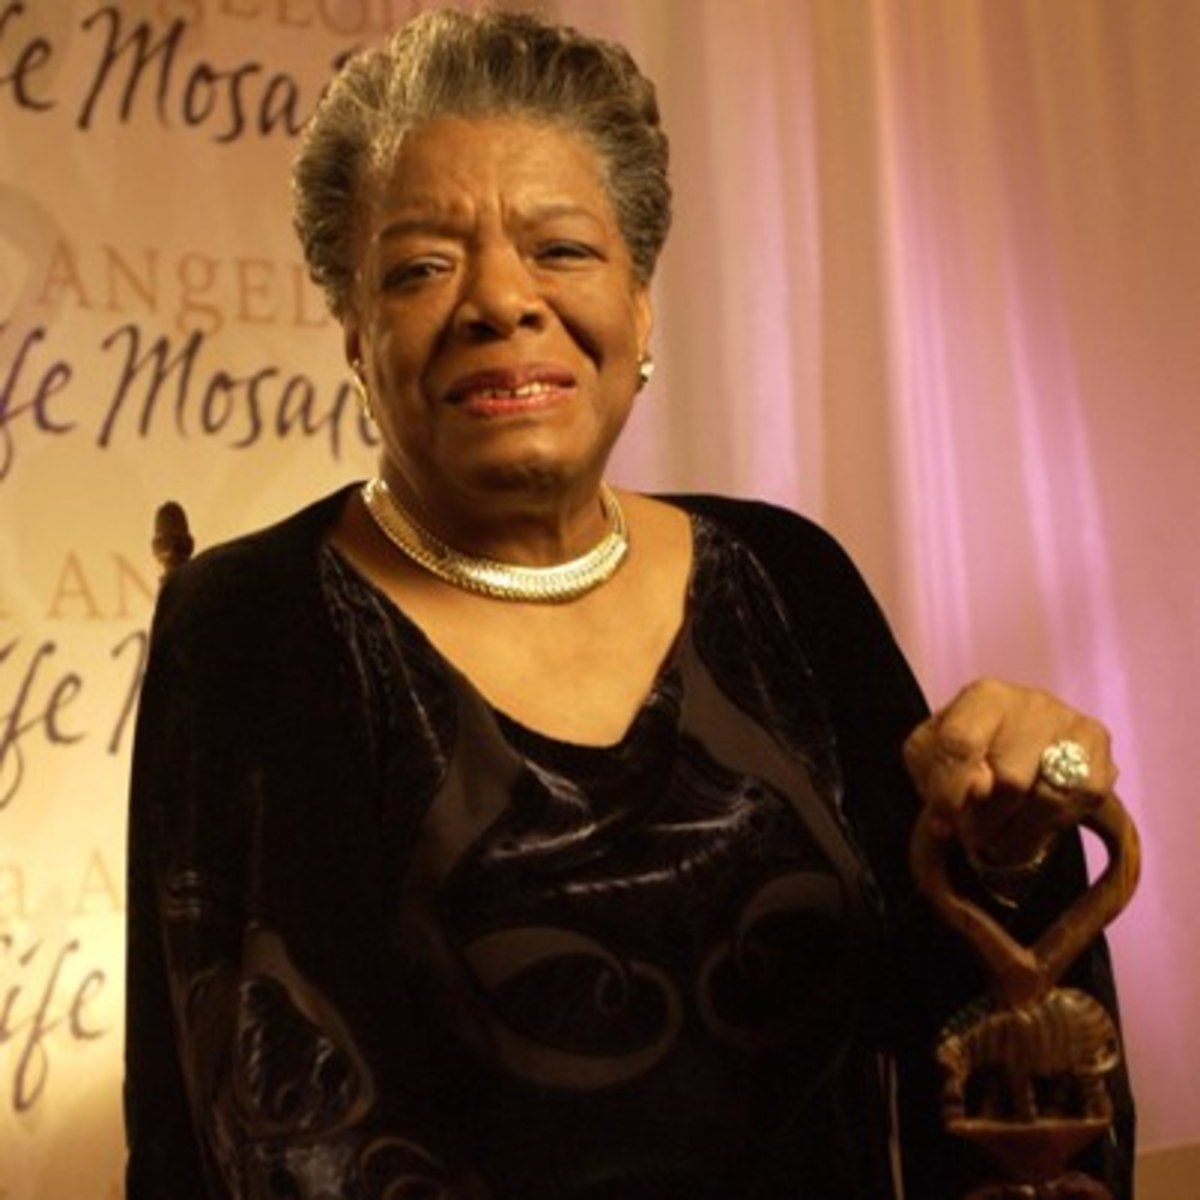 a angelou author activist civil rights activist poet a angelou author activist civil rights activist poet com